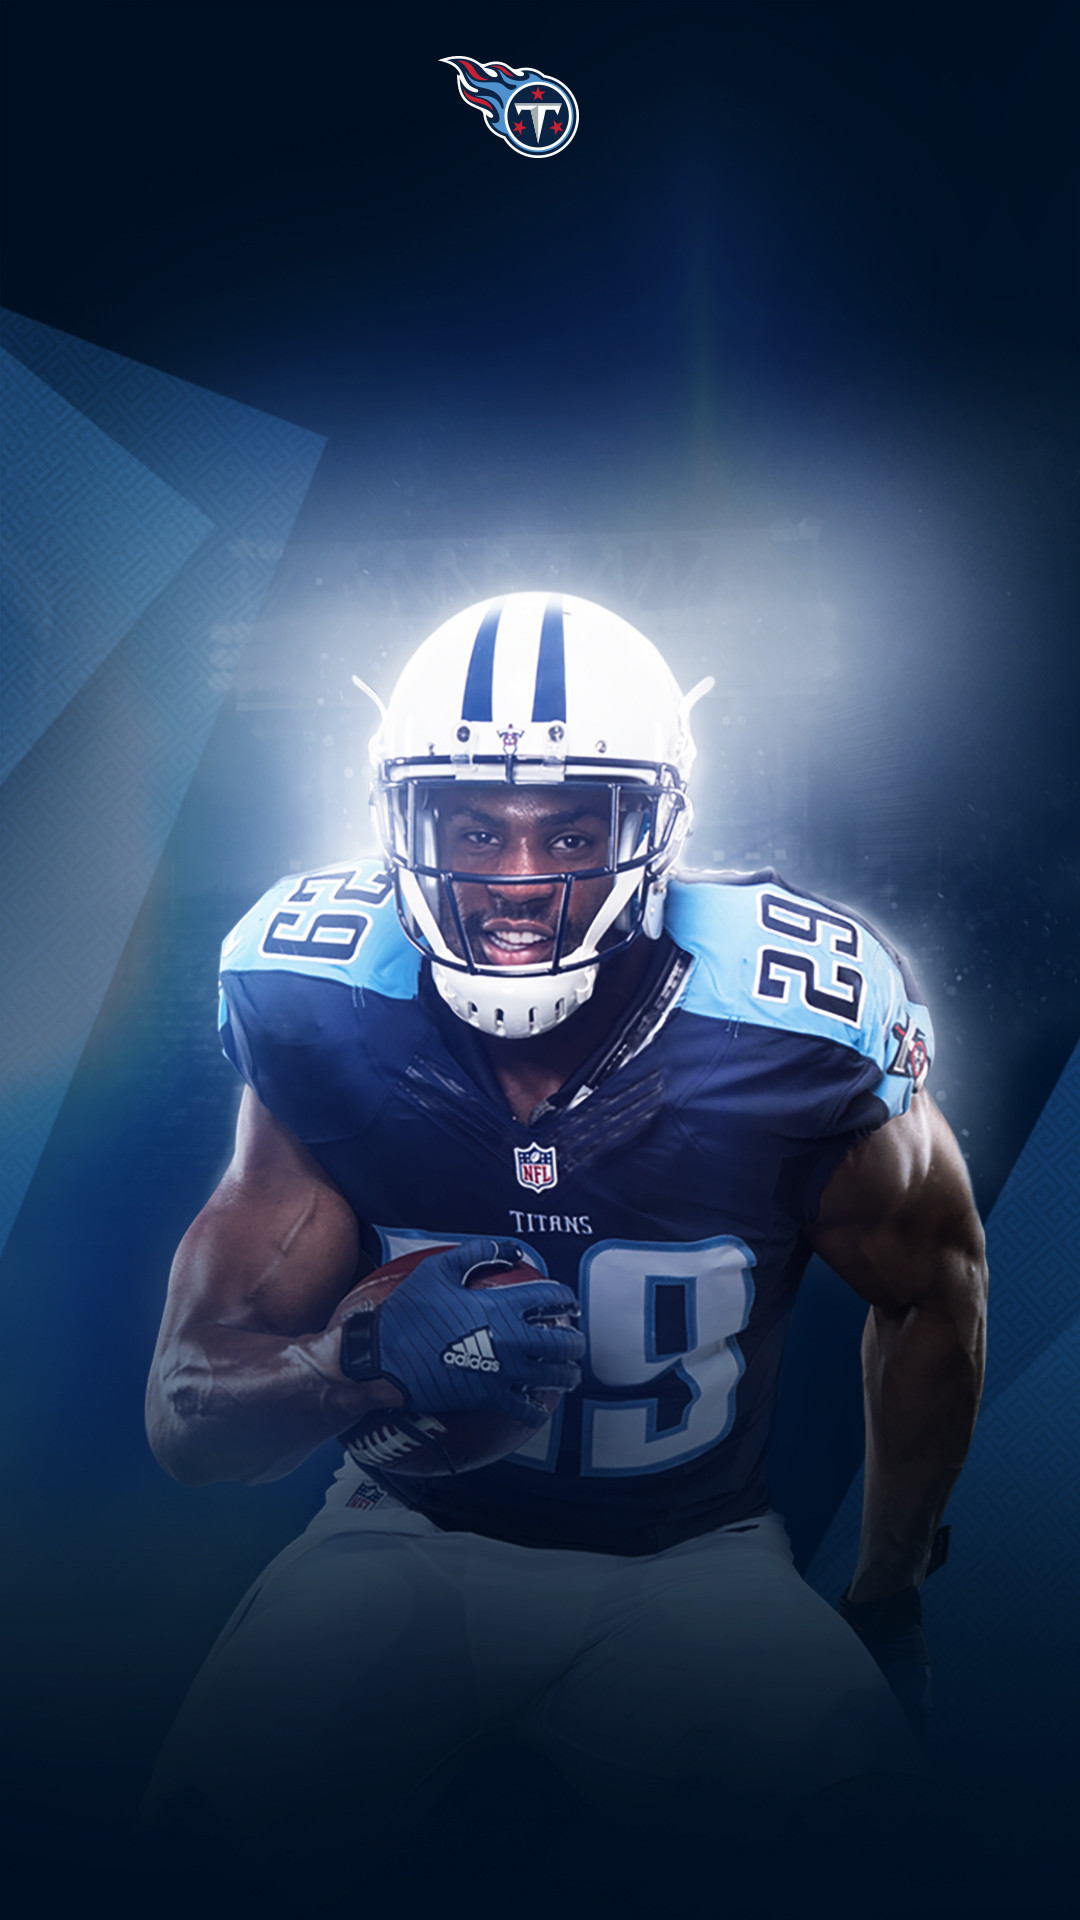 Res: 1080x1920, Tennessee Titans Wallpapers Download #36PG3T4